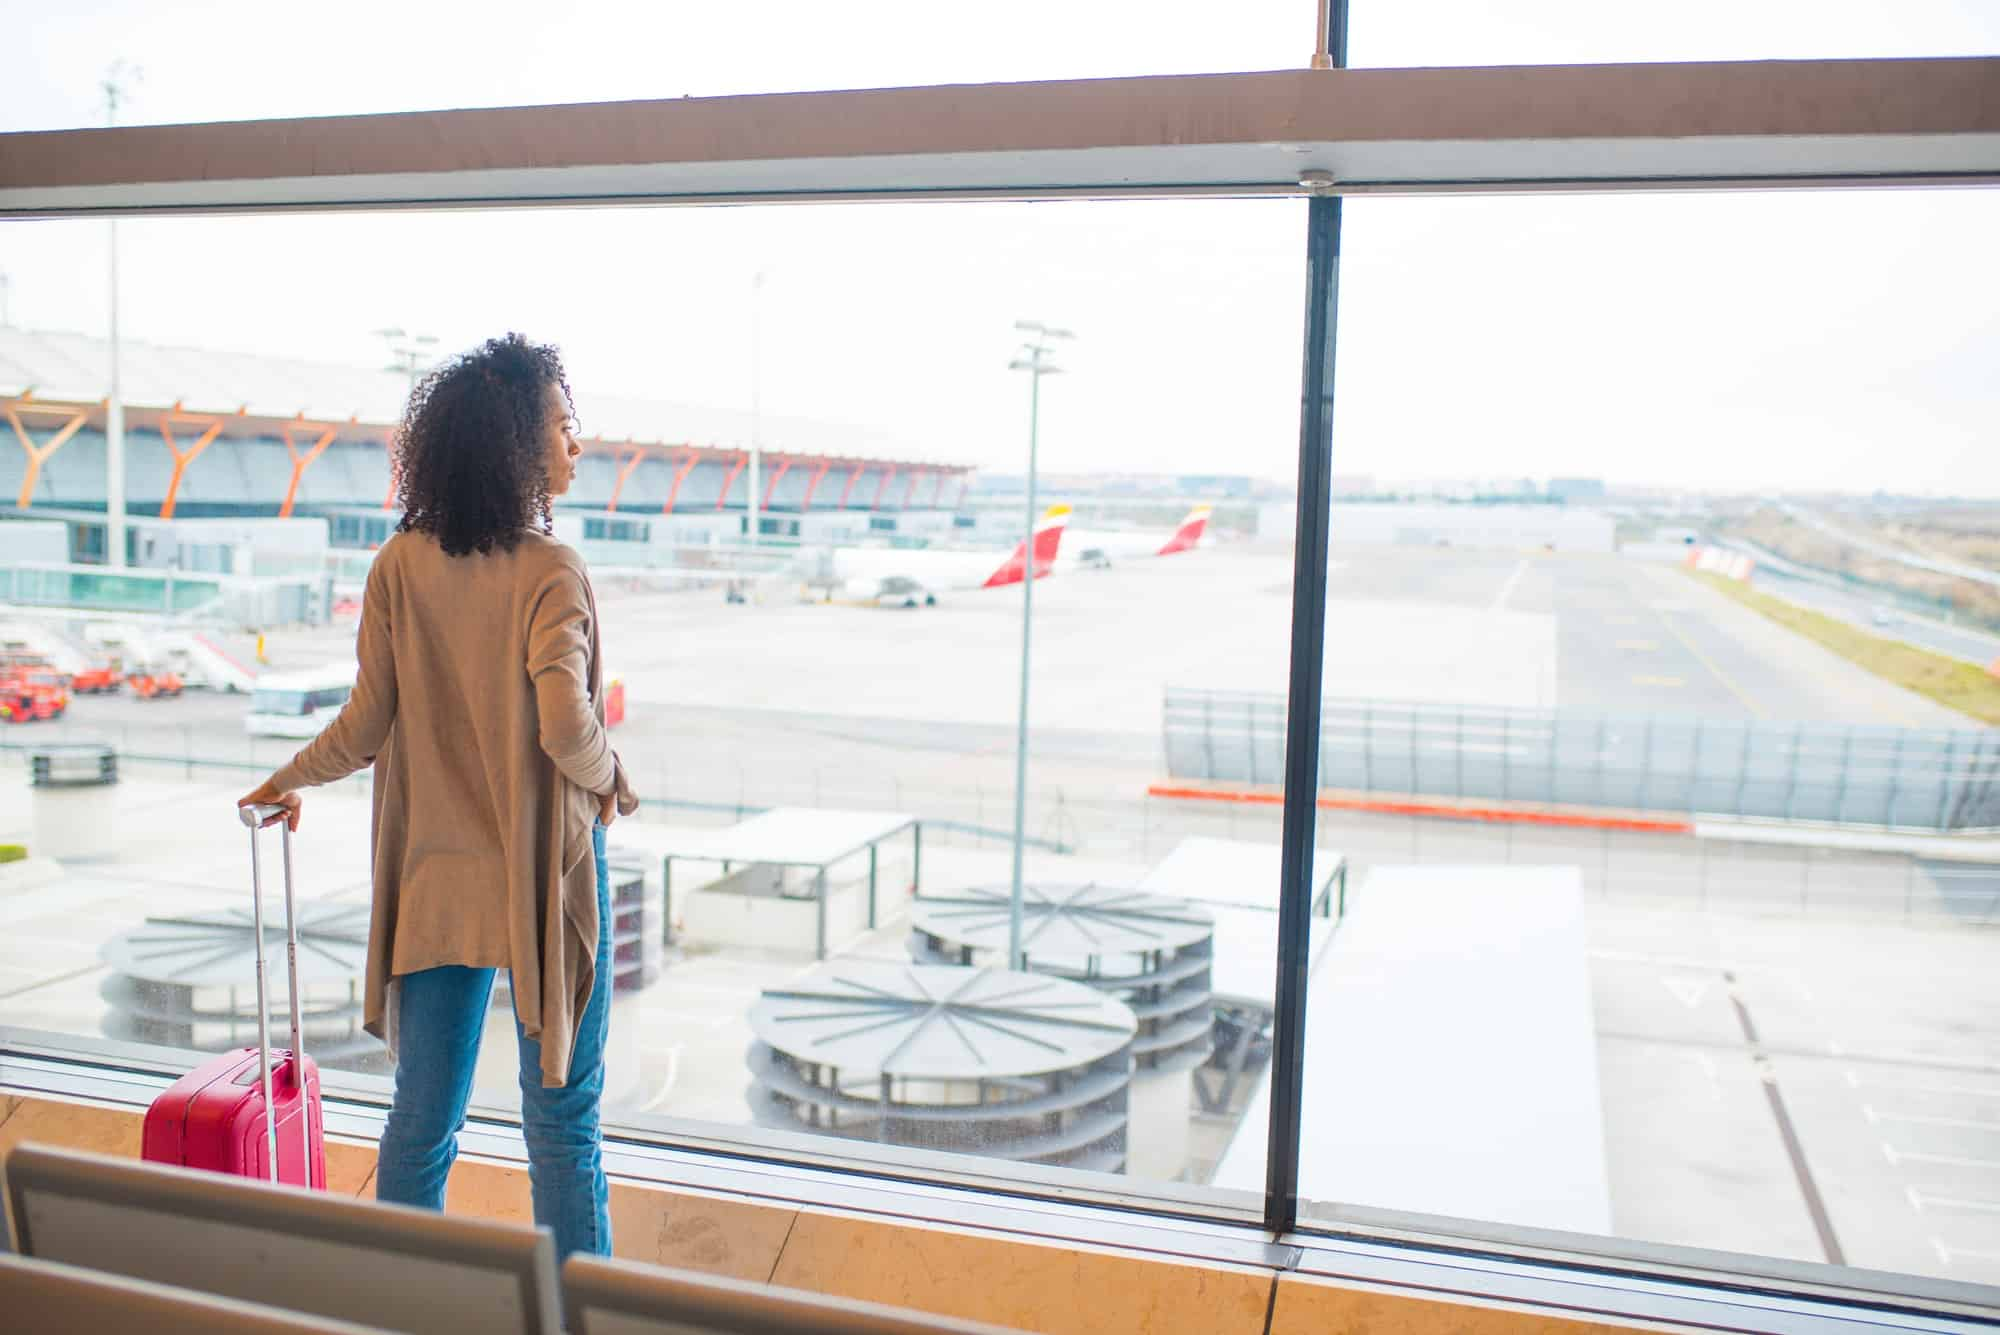 Flying Restrictions During Pregnancy